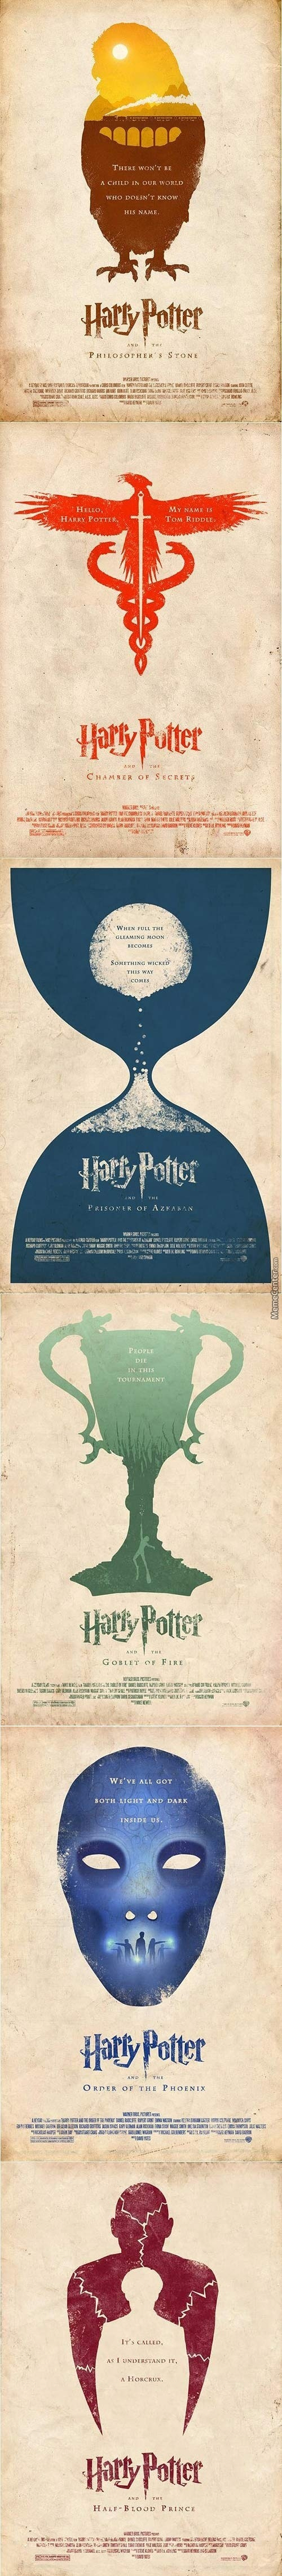 Some Minimalist Harry Potter Posters